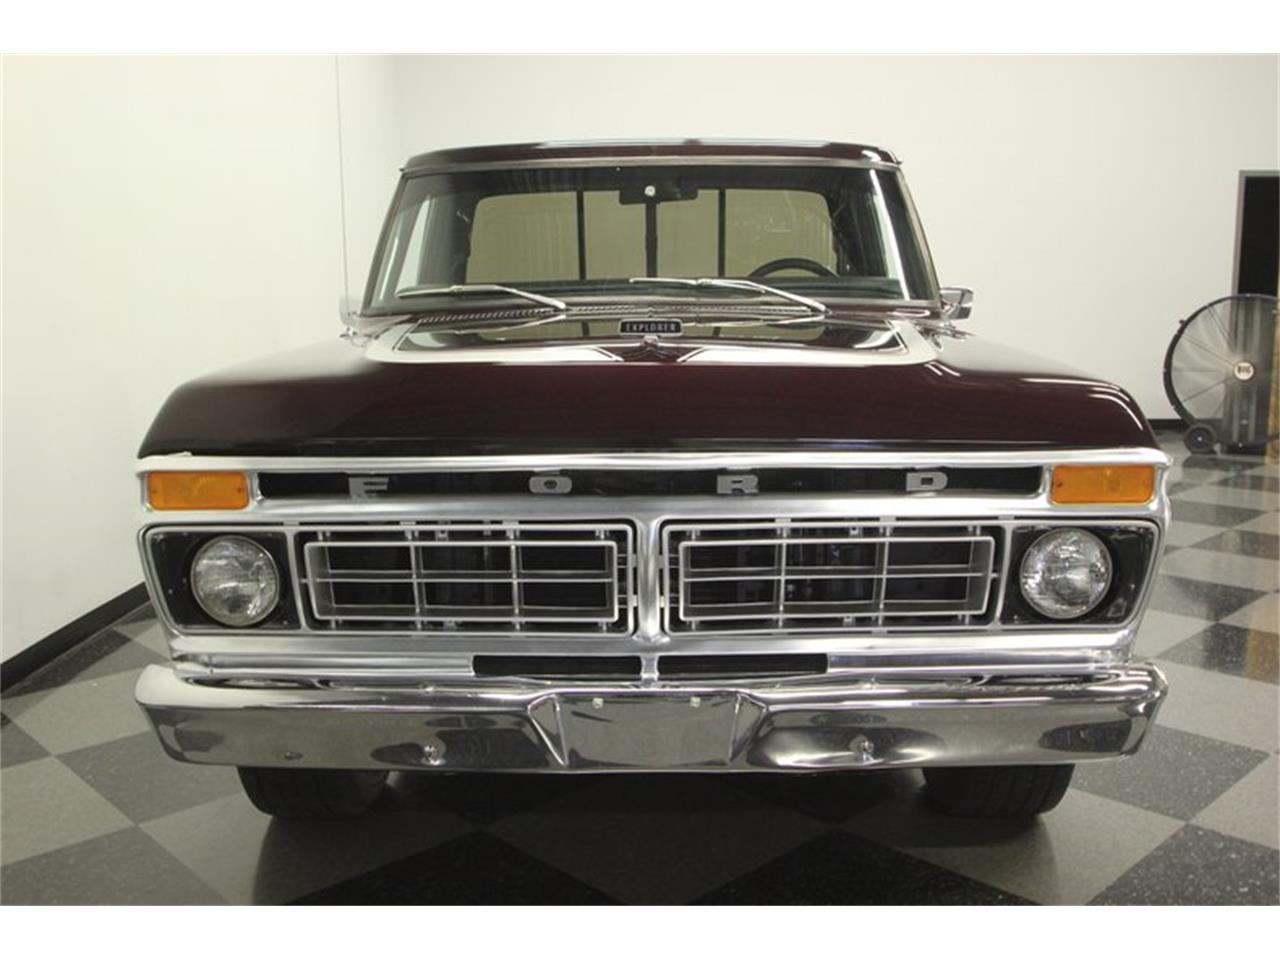 1977 Ford F100 for sale in Lutz, FL – photo 19